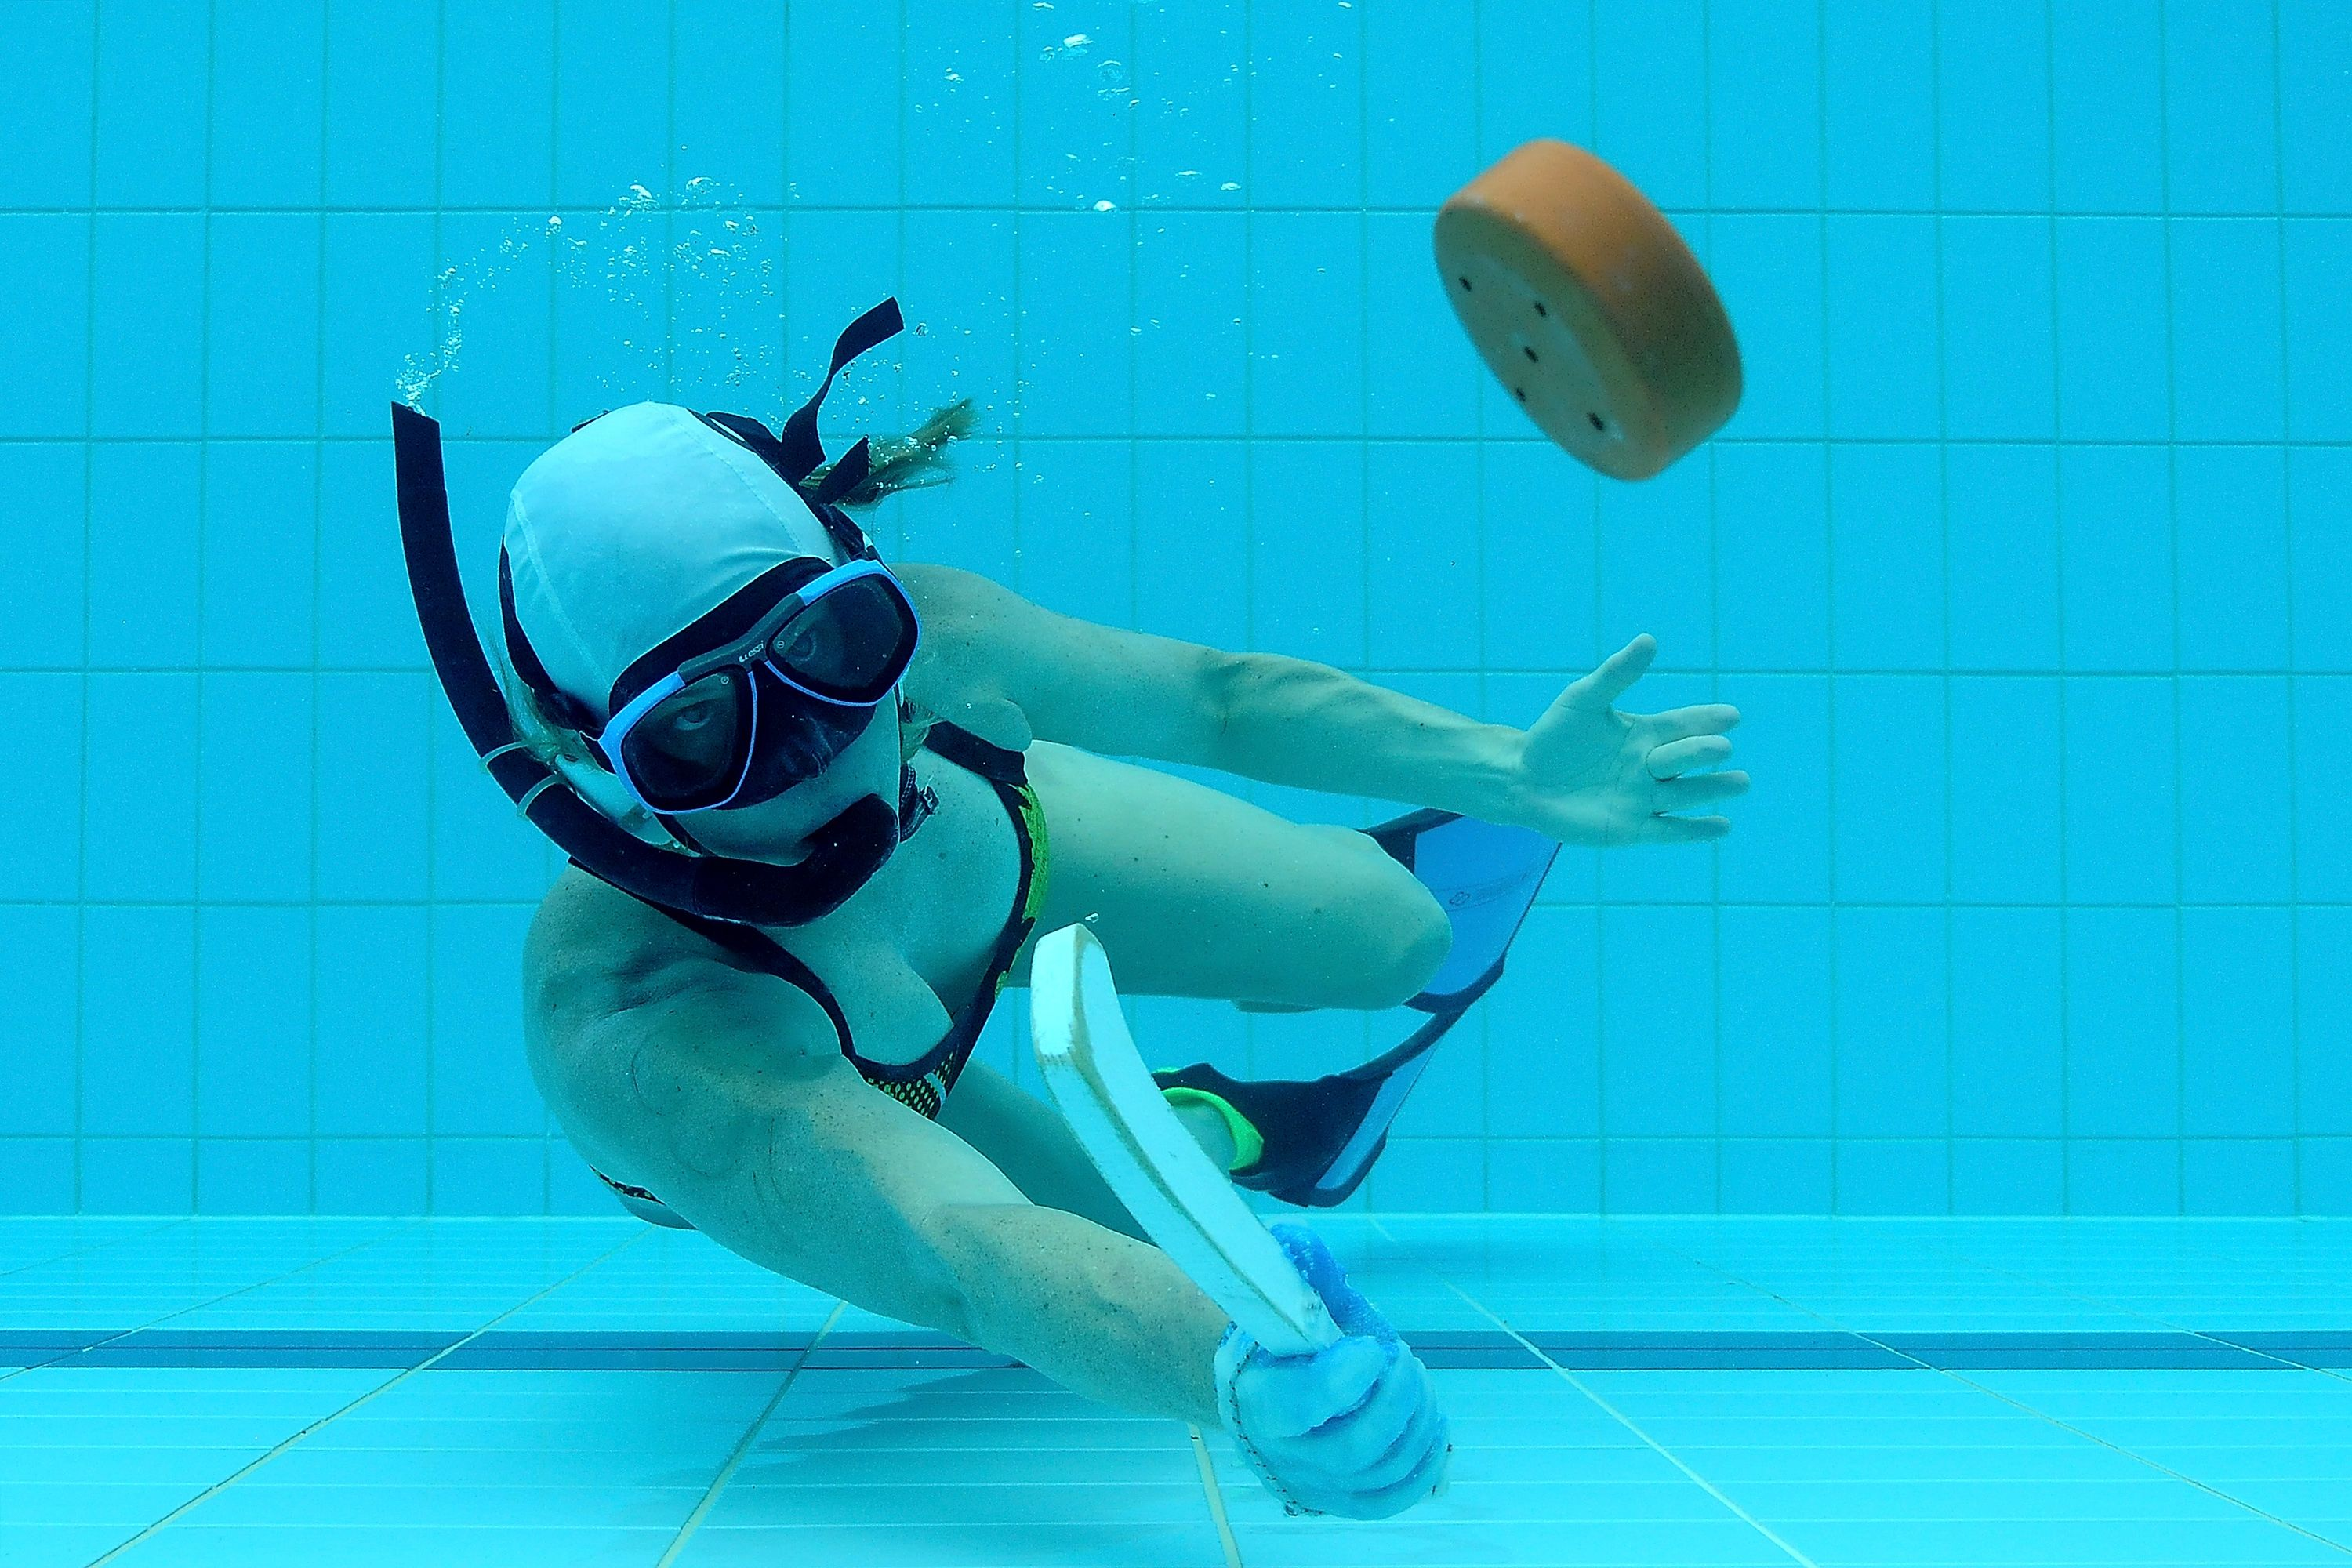 Pin By Aqualad On Underwater People Underwater World Of Sports Hockey